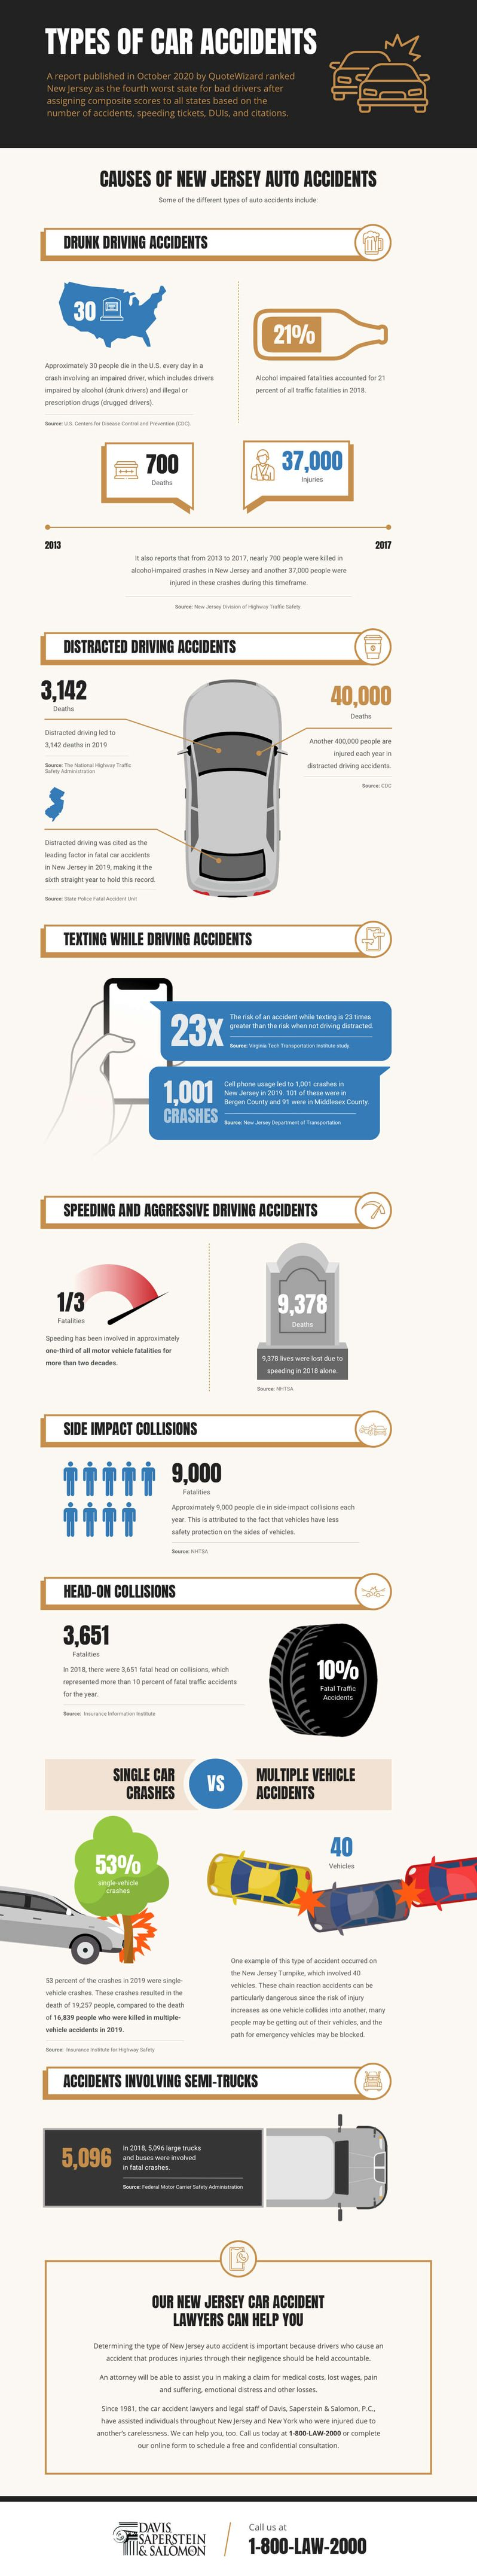 Causes of New Jersey Auto Accidents